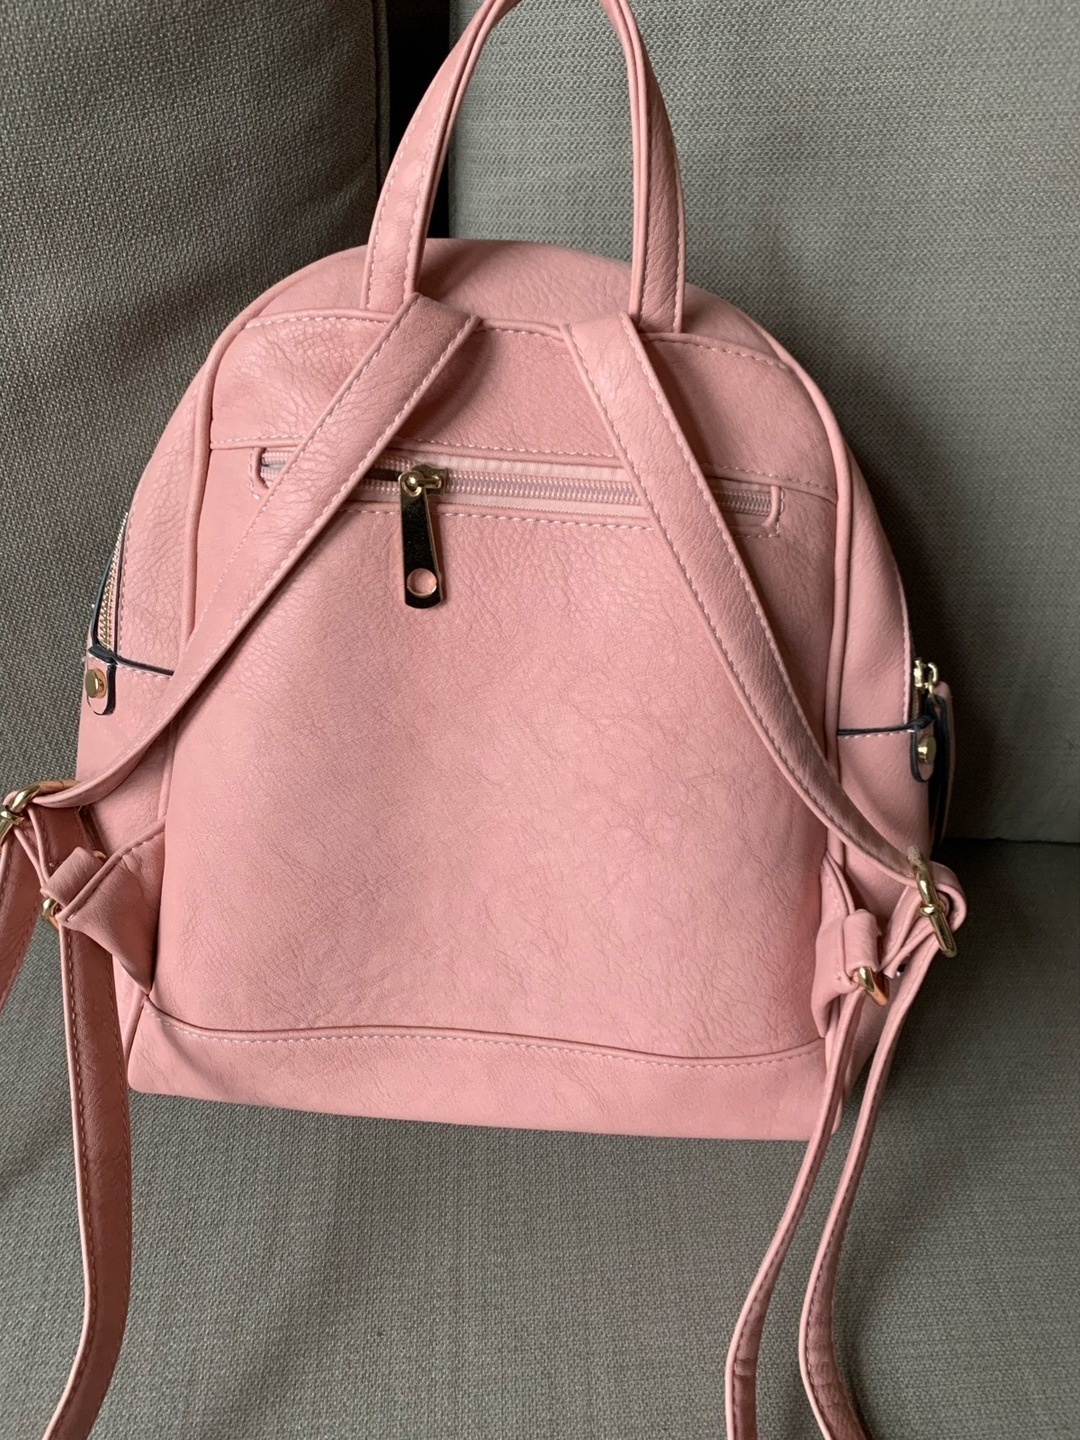 Women's bags & purses - H&M photo 2